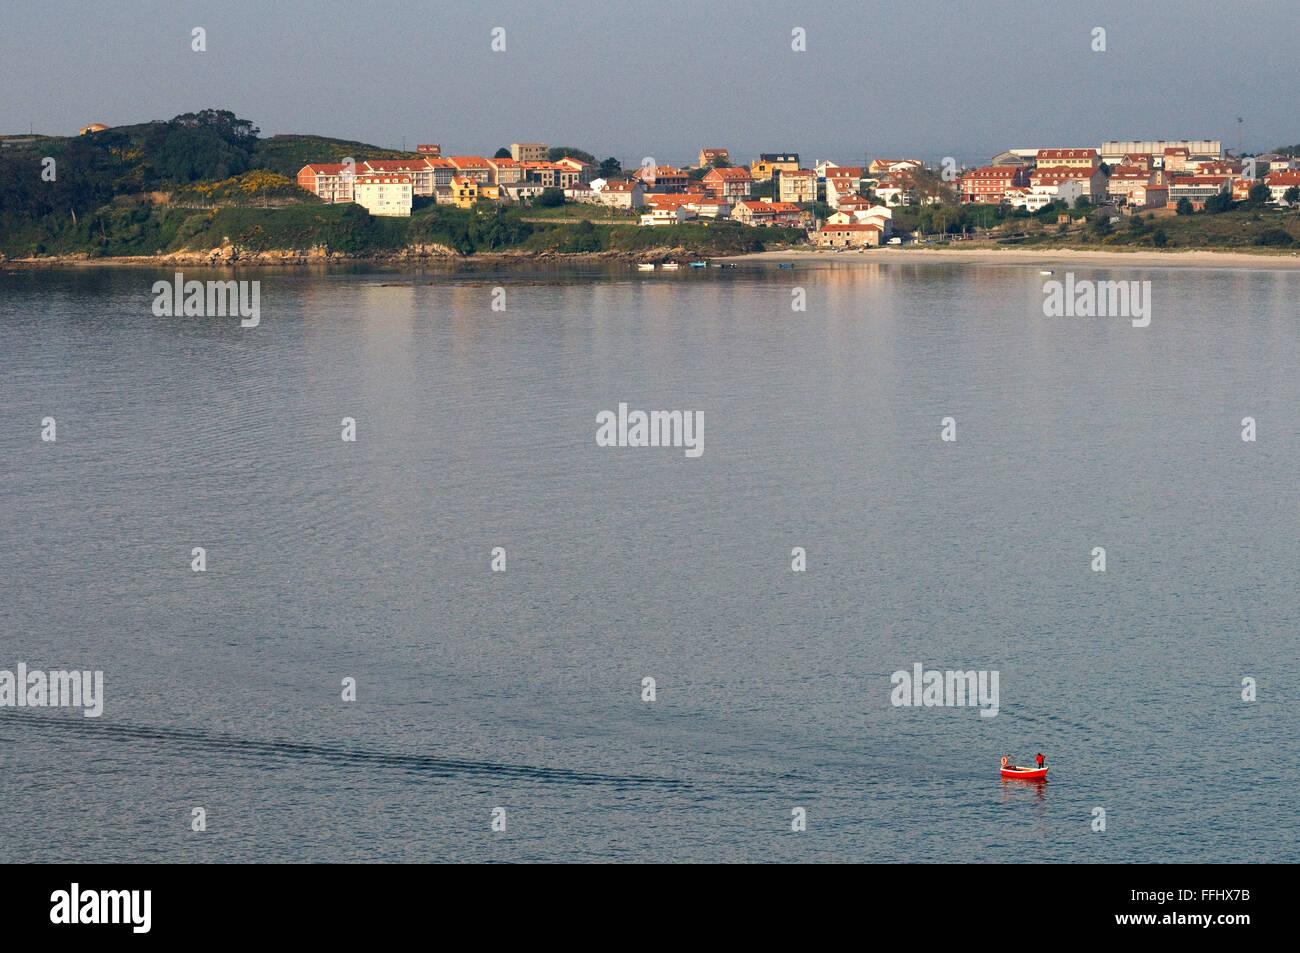 Way of St. James, Jacobean Route. Village on the estuary of Corcubión. St. James's Way, St. James's - Stock Image